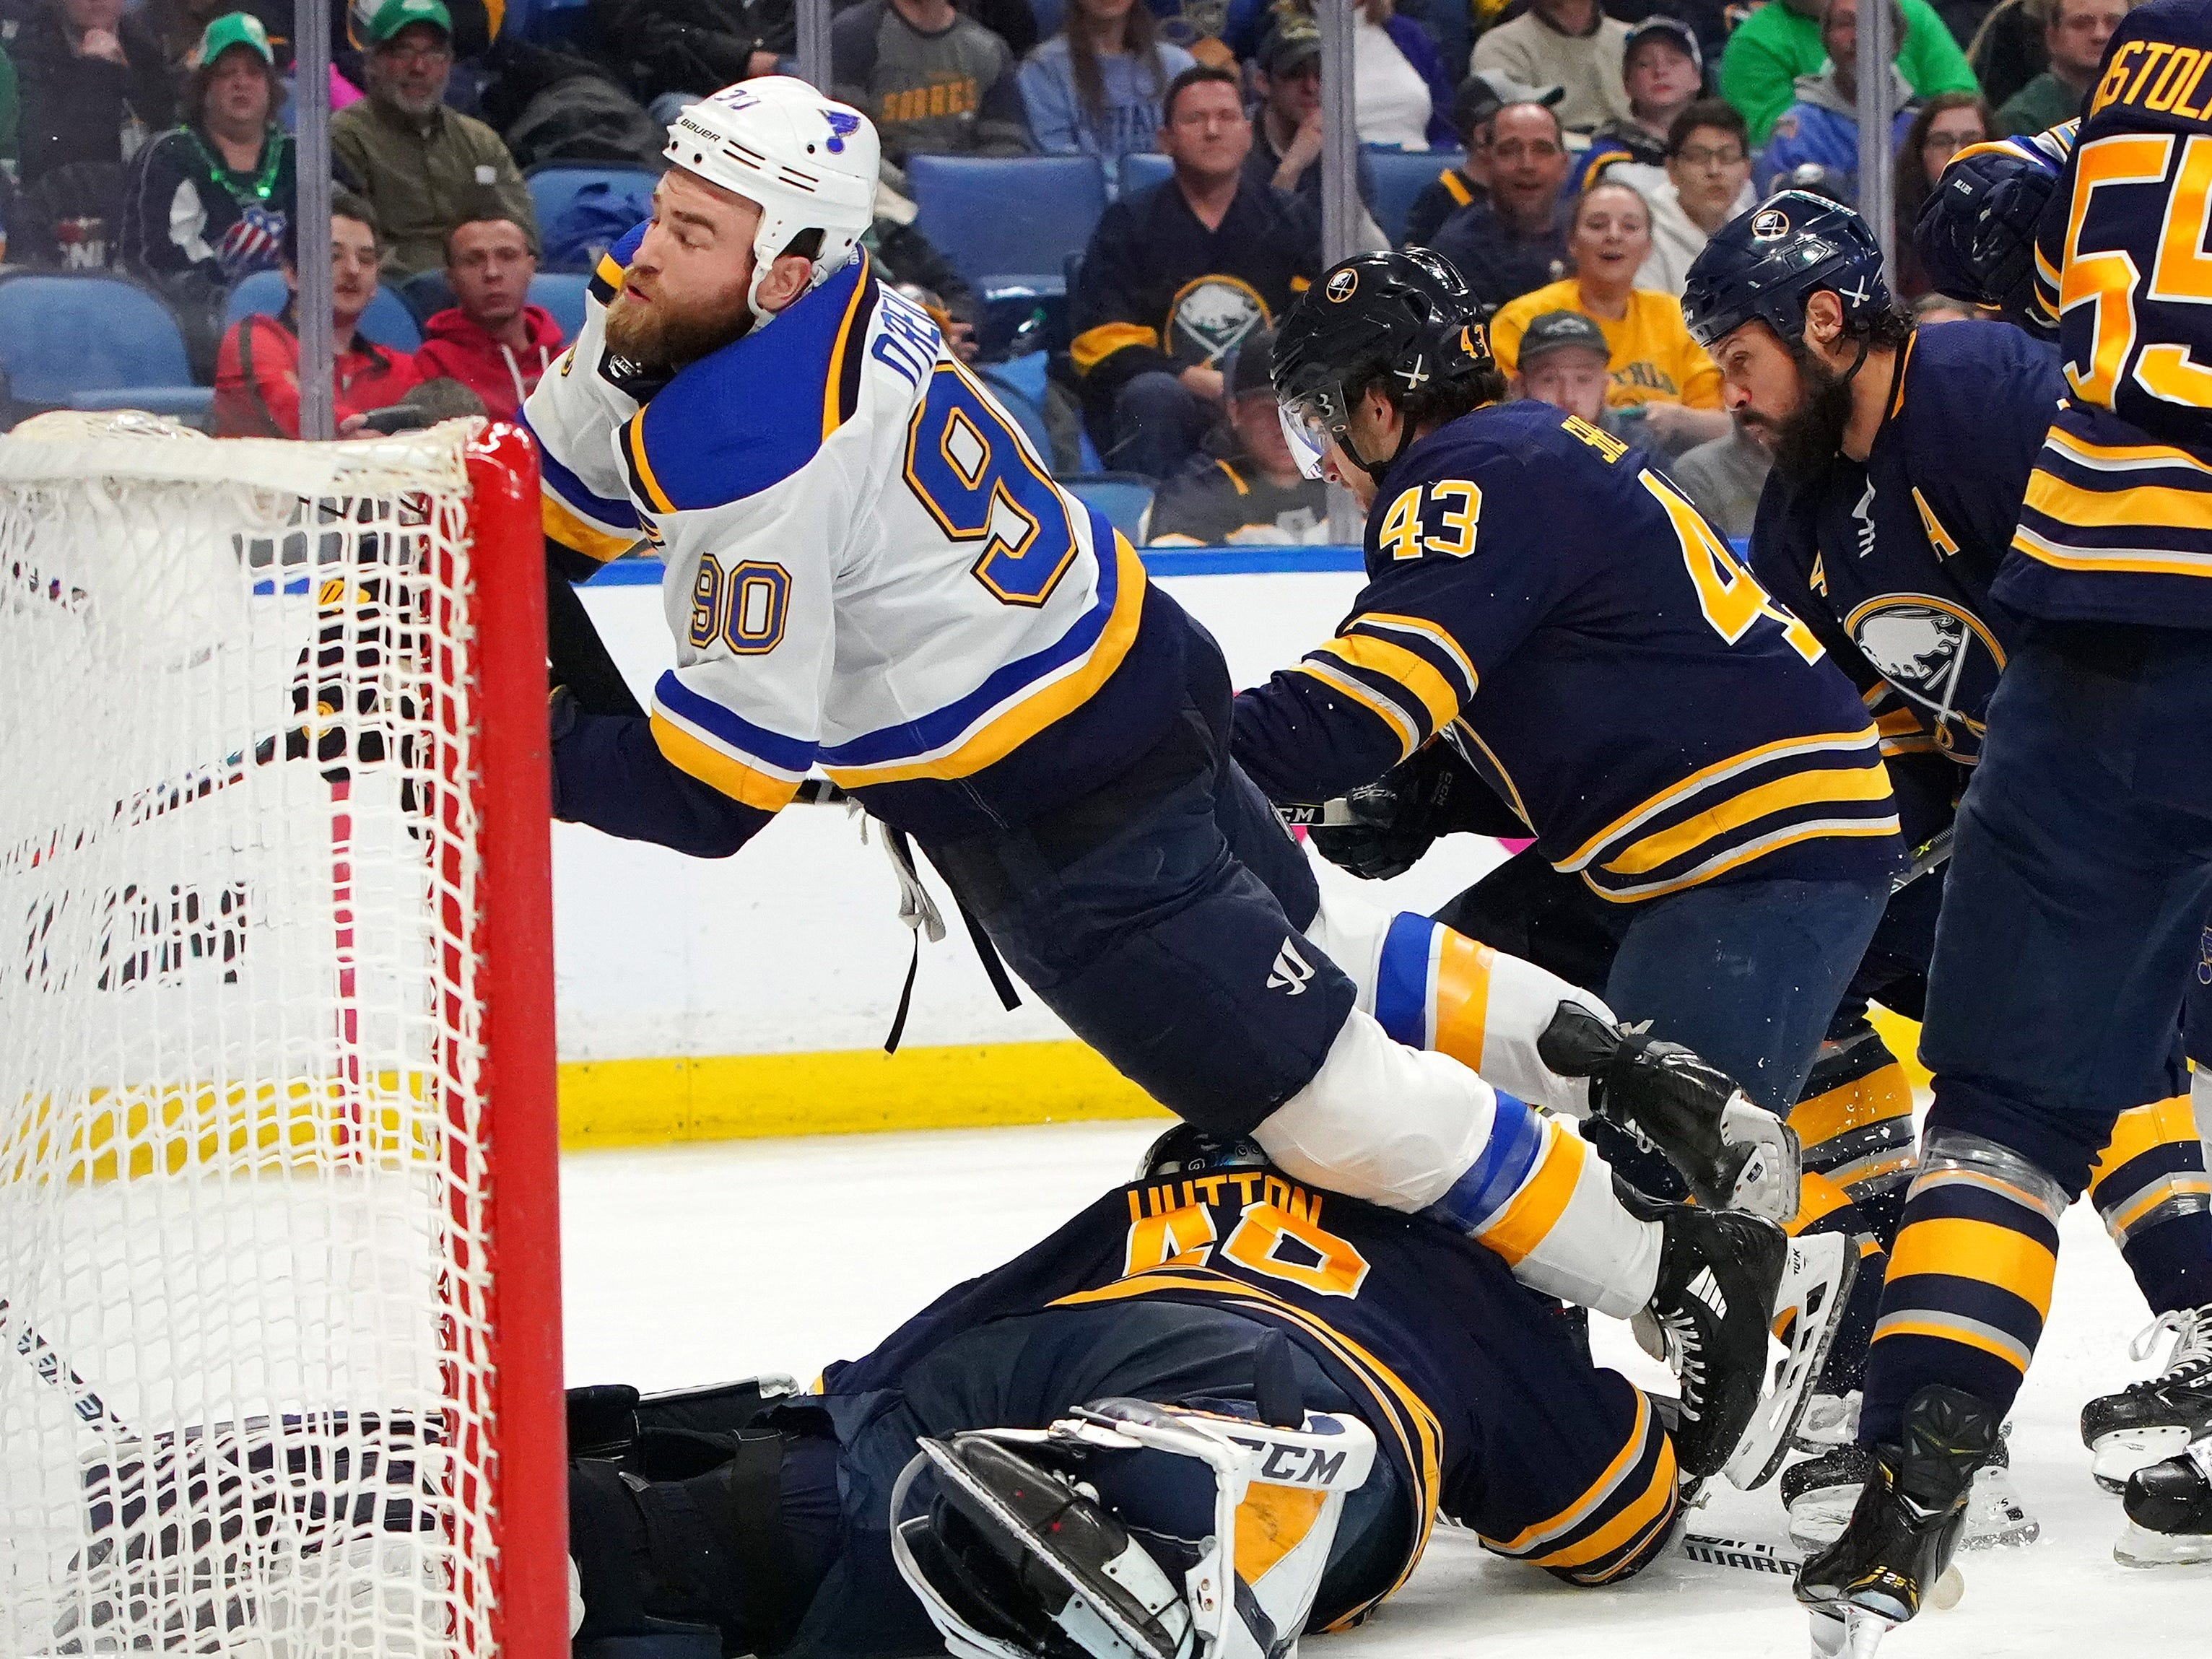 March 17: St. Louis center Ryan O'Reilly (90) goes flying over Buffalo Sabres goaltender Carter Hutton (40) during the third period. The Sabres topped the Blues 4-3 in a shootout.